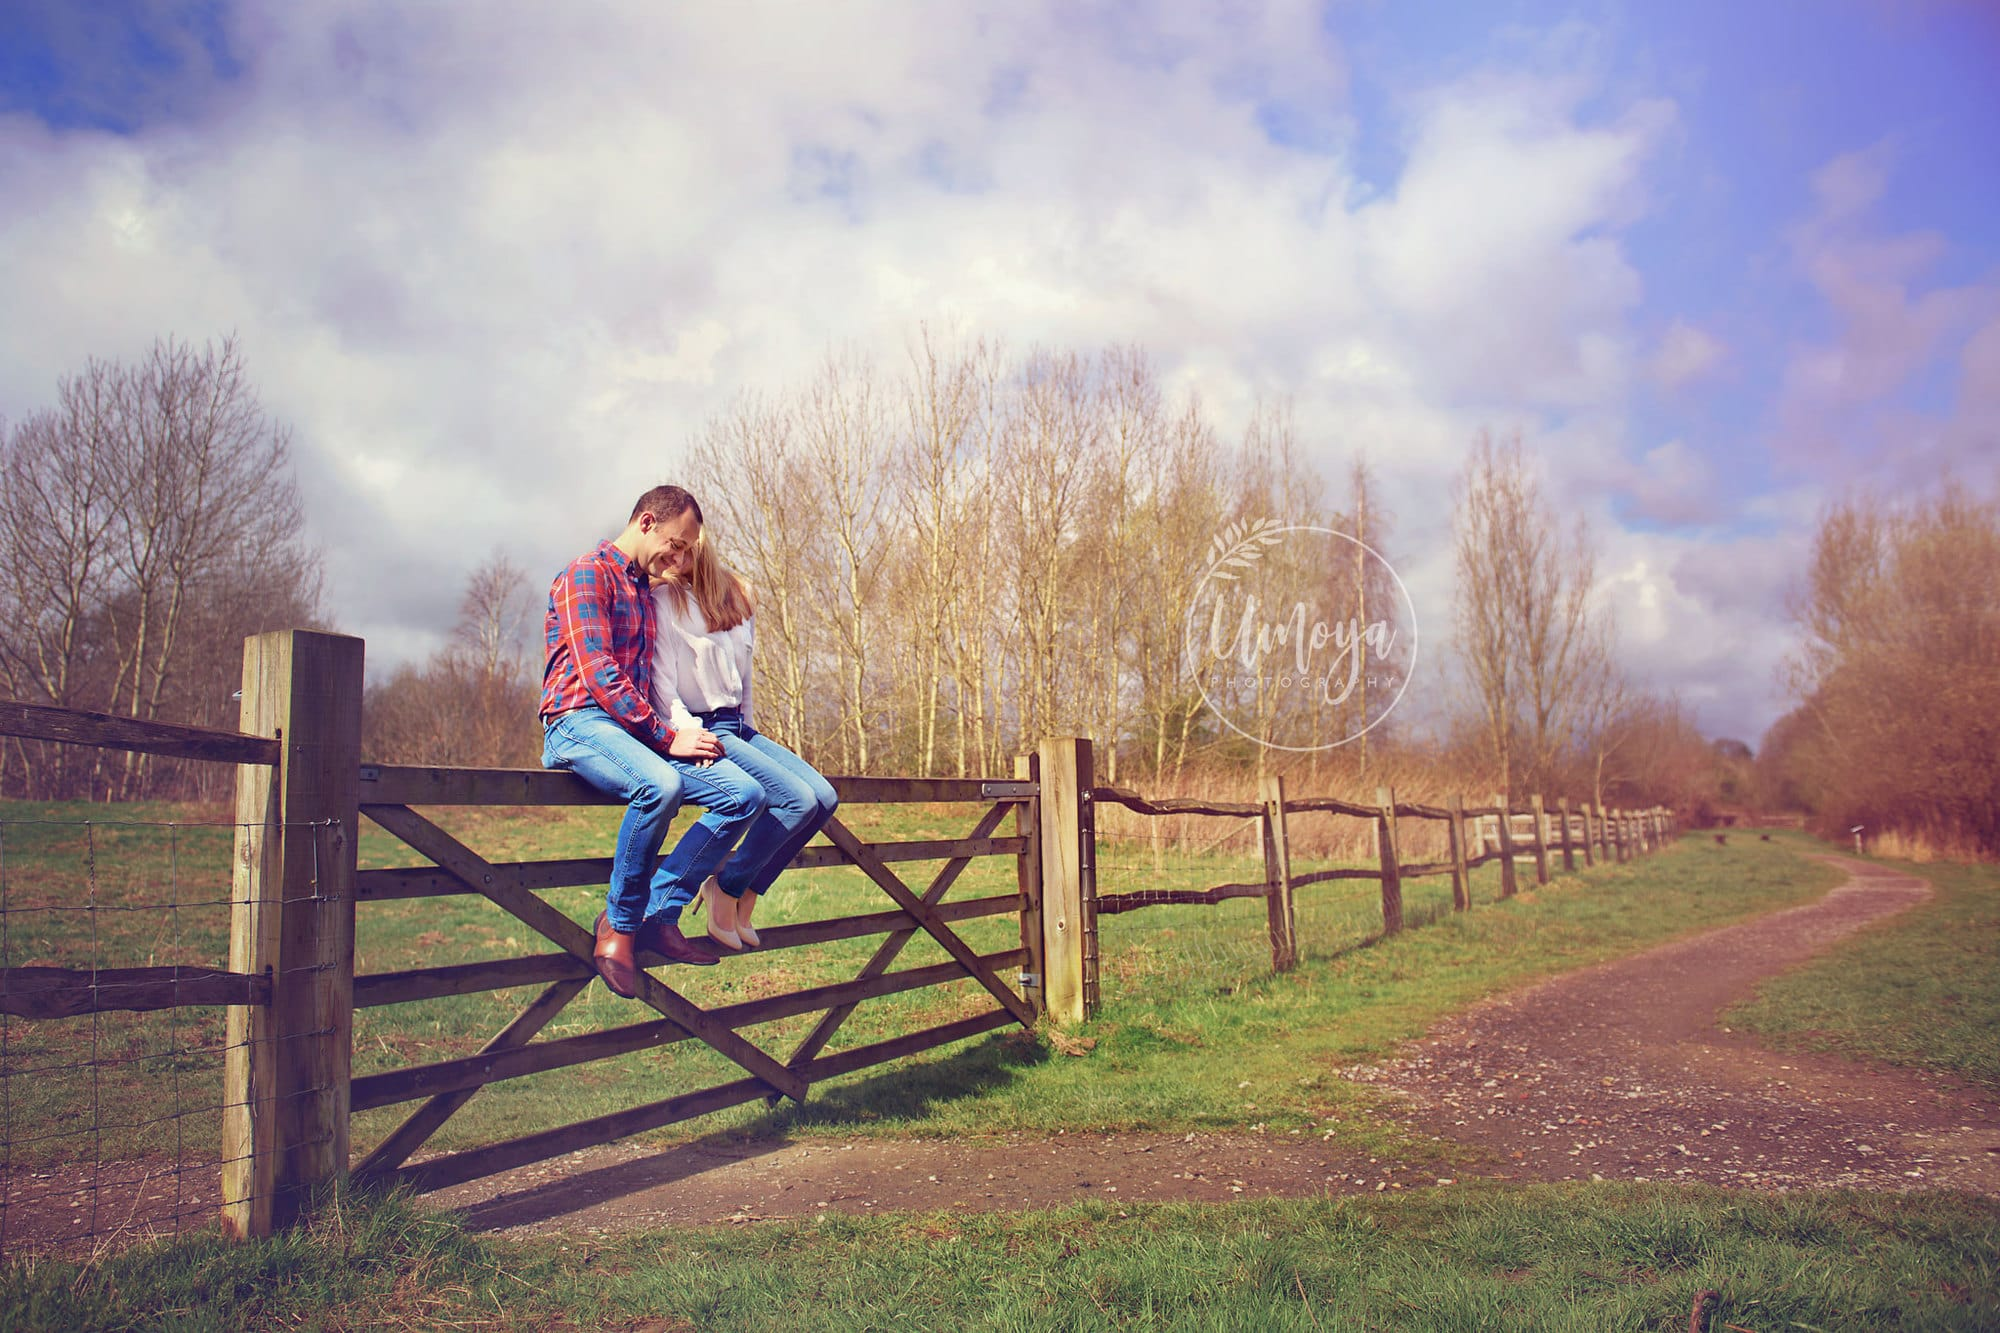 Engagement photoshoot by Umoya Photography, Horsham